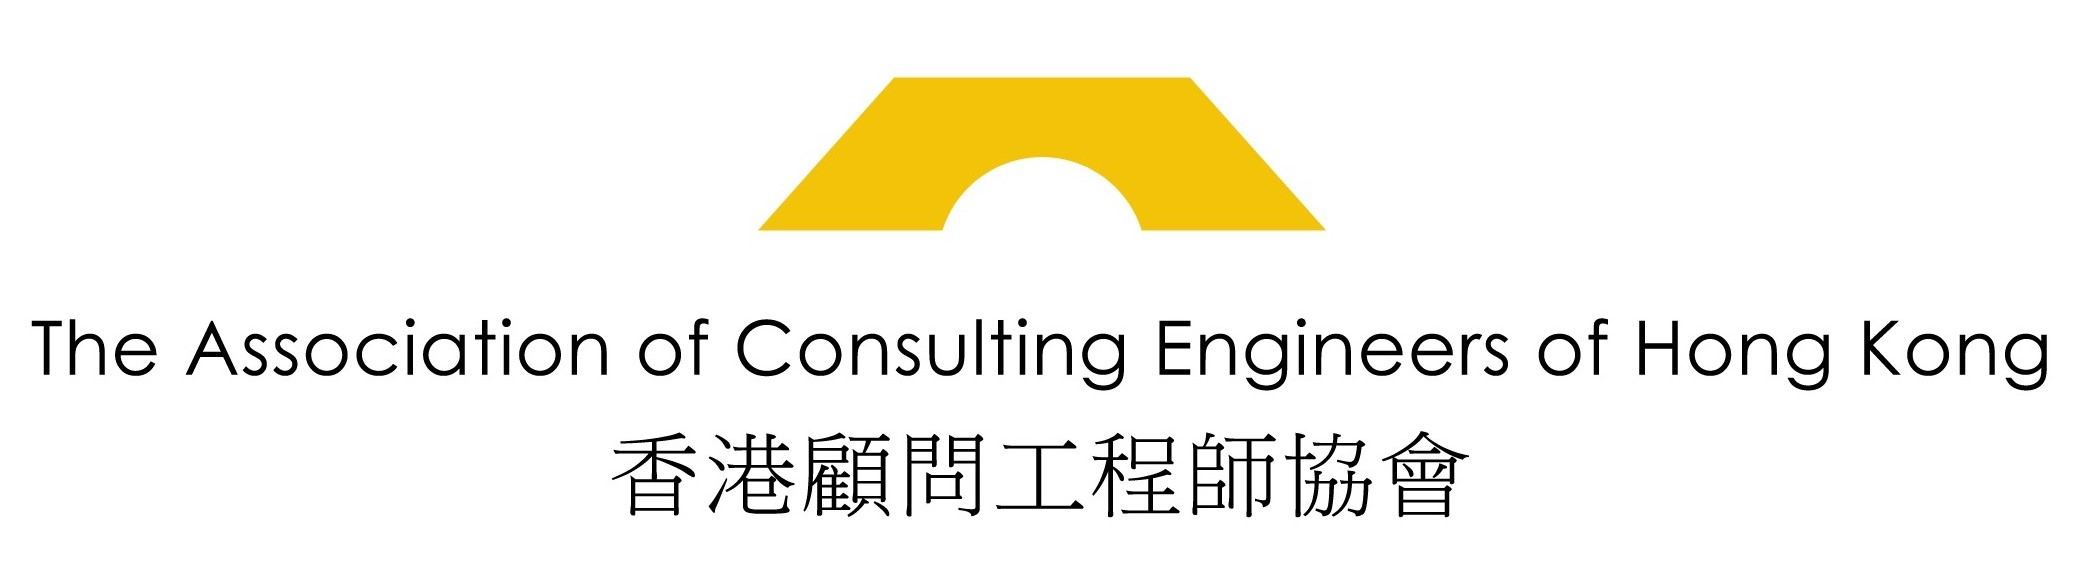 Association of Consulting Engineers of Hong Kong (ACEHK)